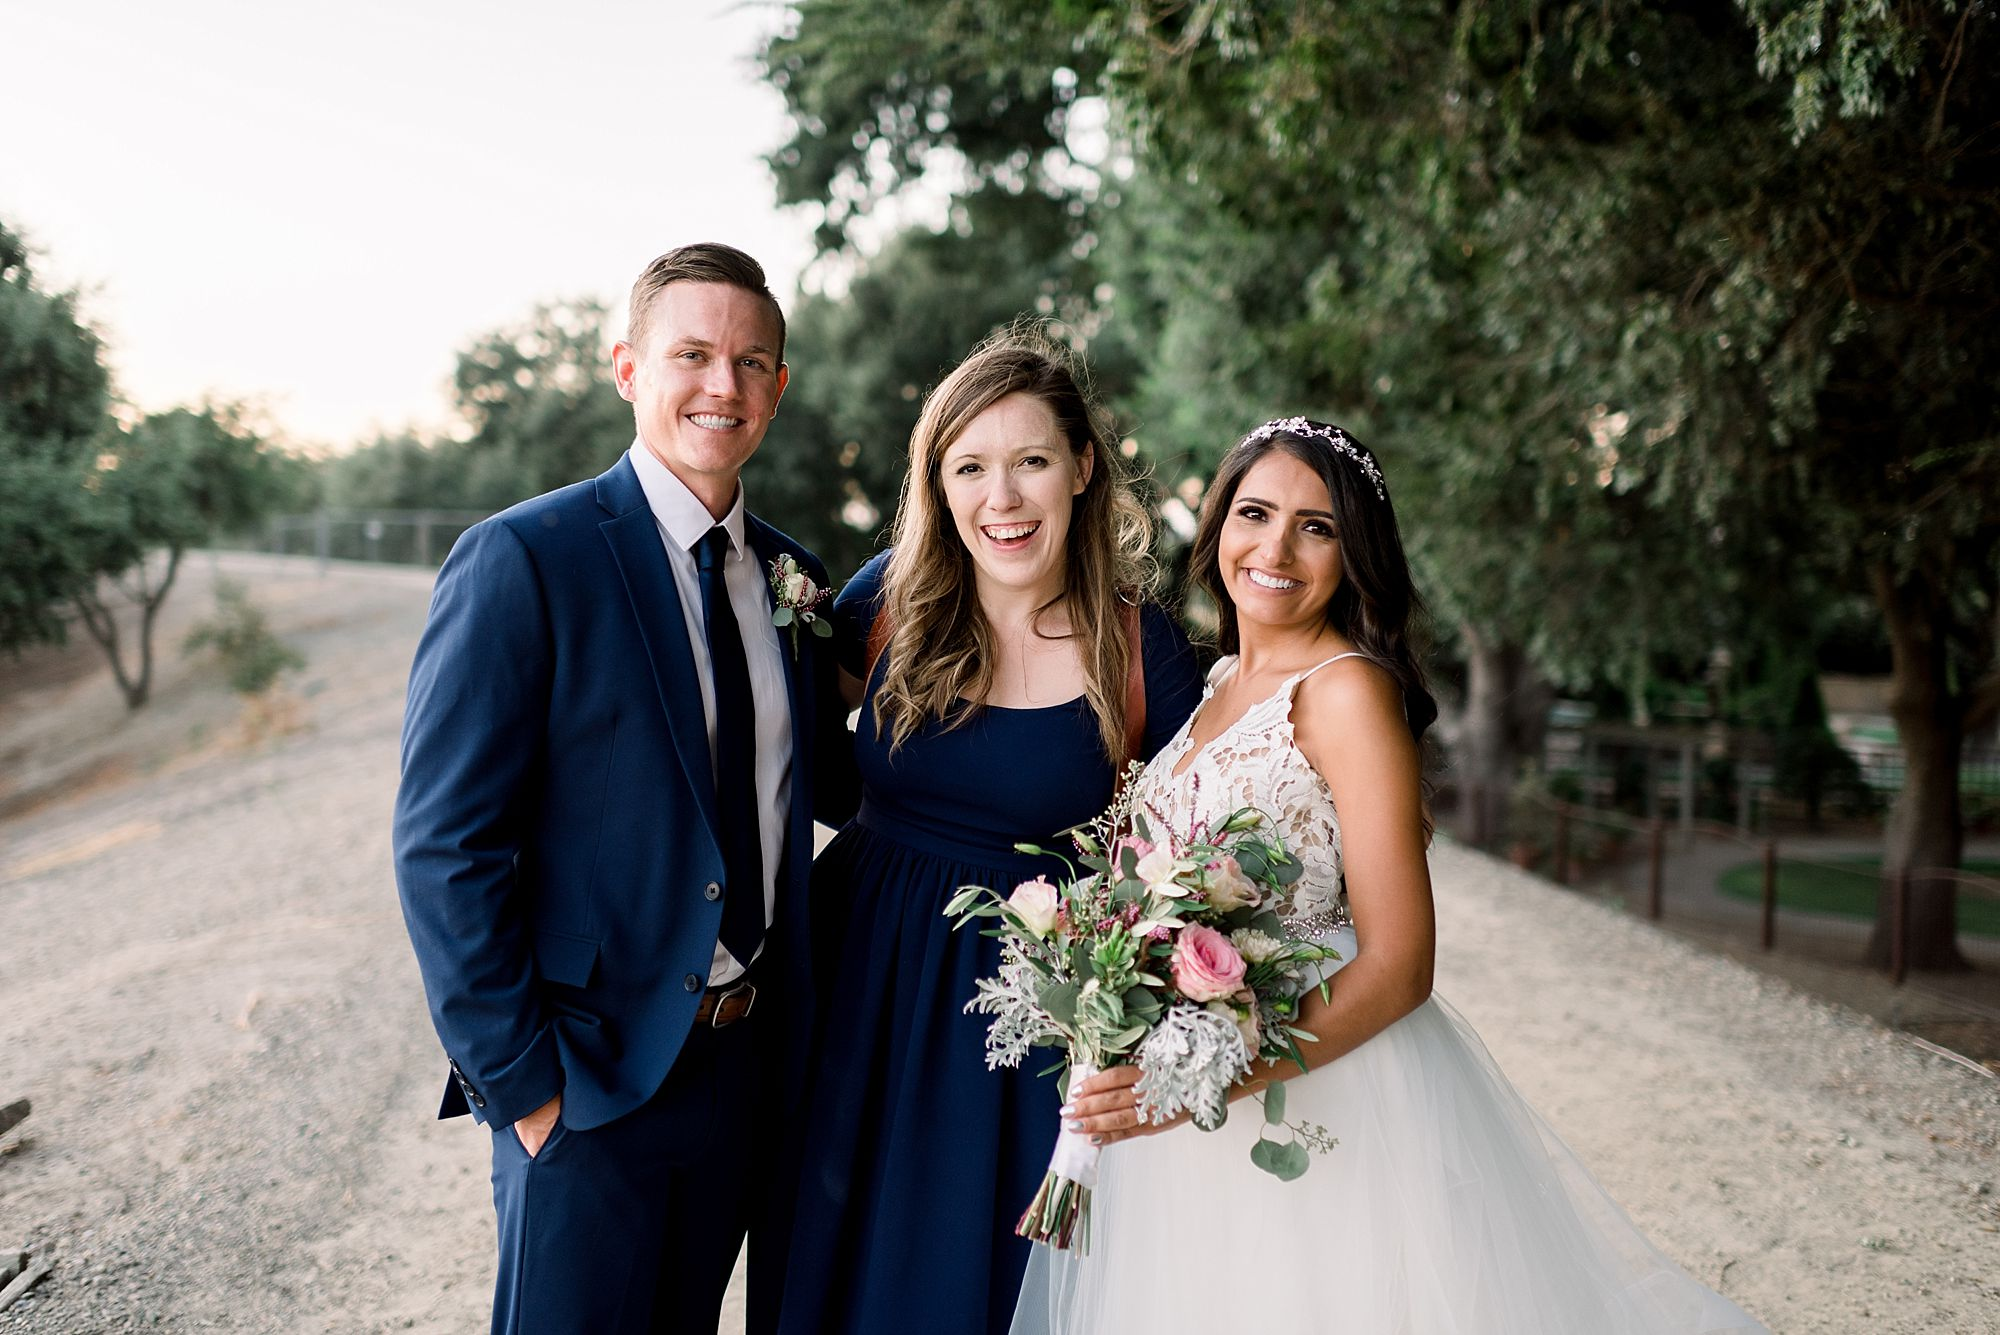 The River Mill Wedding Stockton - Ashley Baumgartner - Stockton Wedding Photographer - Sacramento Wedding Photography - Hybrid and Film Photographer - Sacramento Film Photographer_0073.jpg